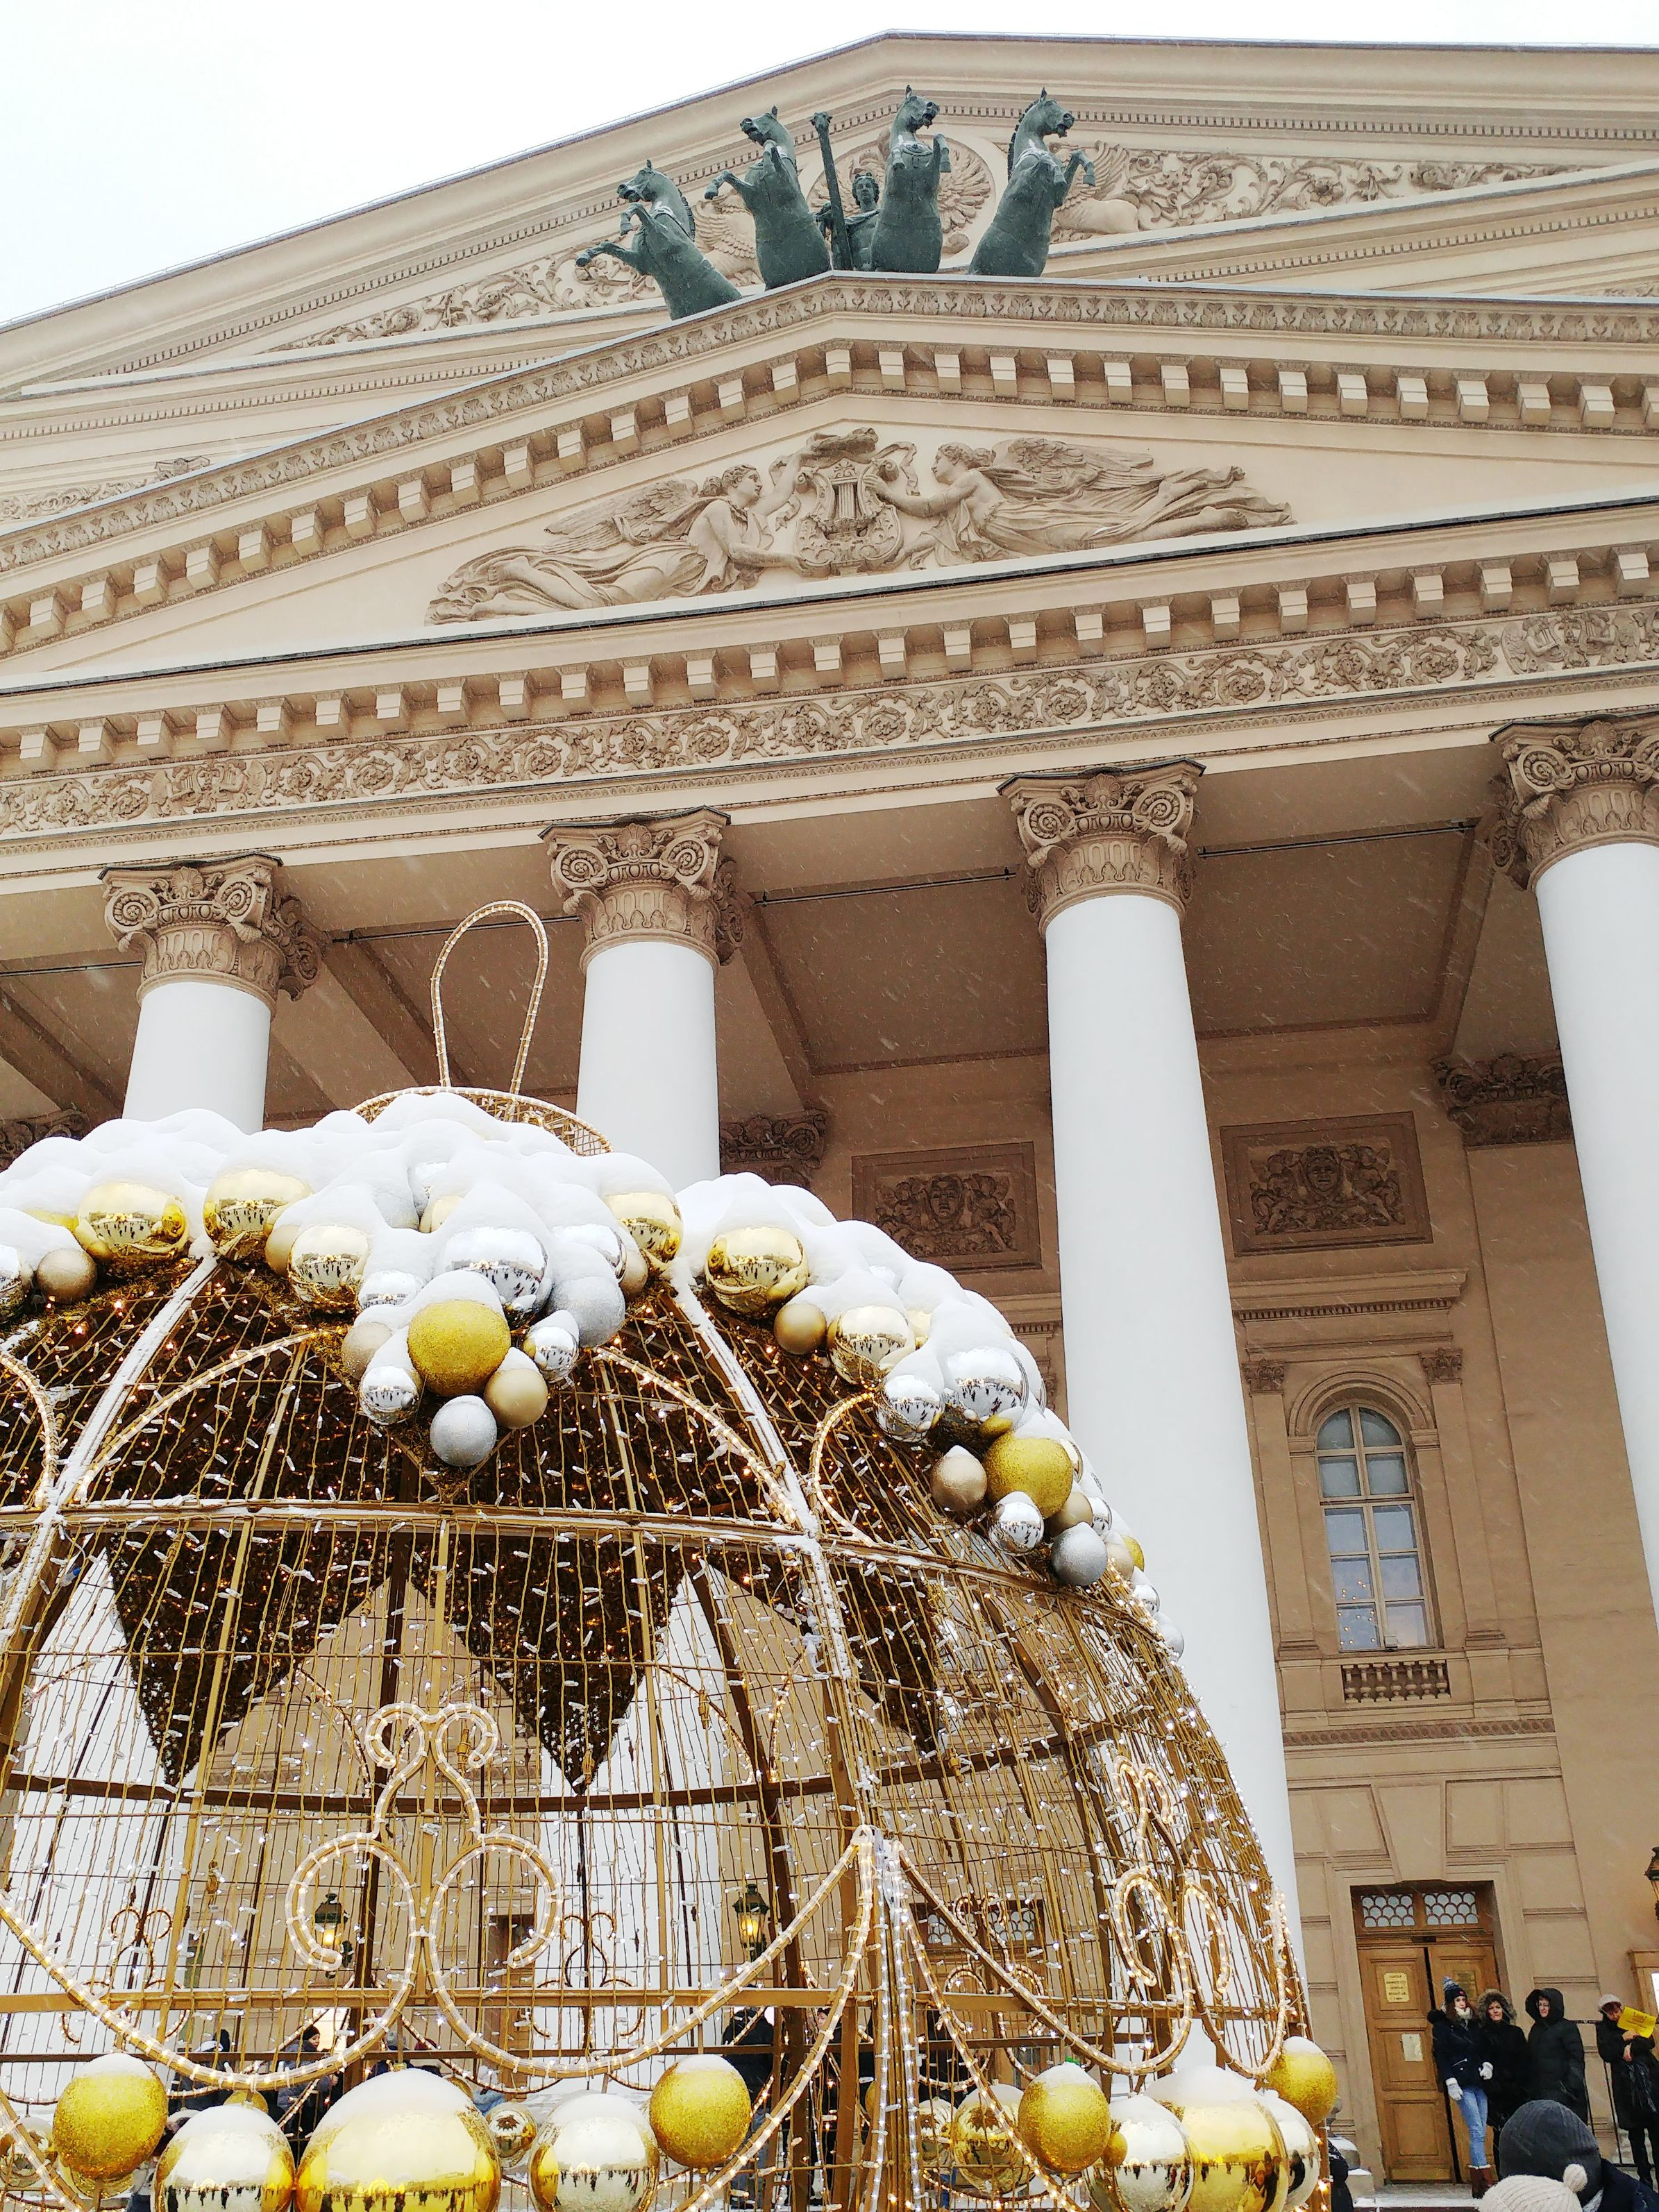 Bolshoi theatre in Moscow with Christmas decorations